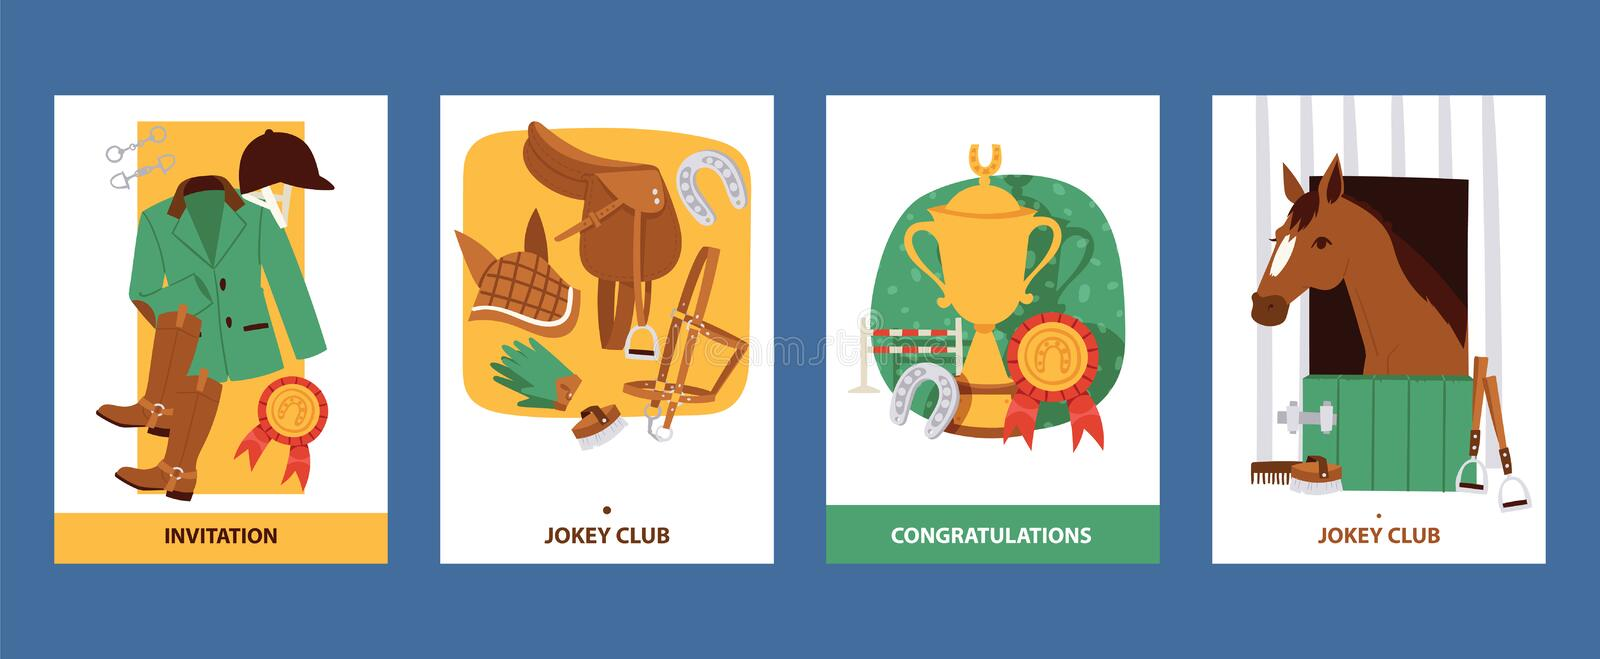 Jokey cards with clothing for horsemen, boots, trousers, helmet, gloves, equipment for horse riding. Invitation and. Jokey cards with clothing for horsemen royalty free illustration